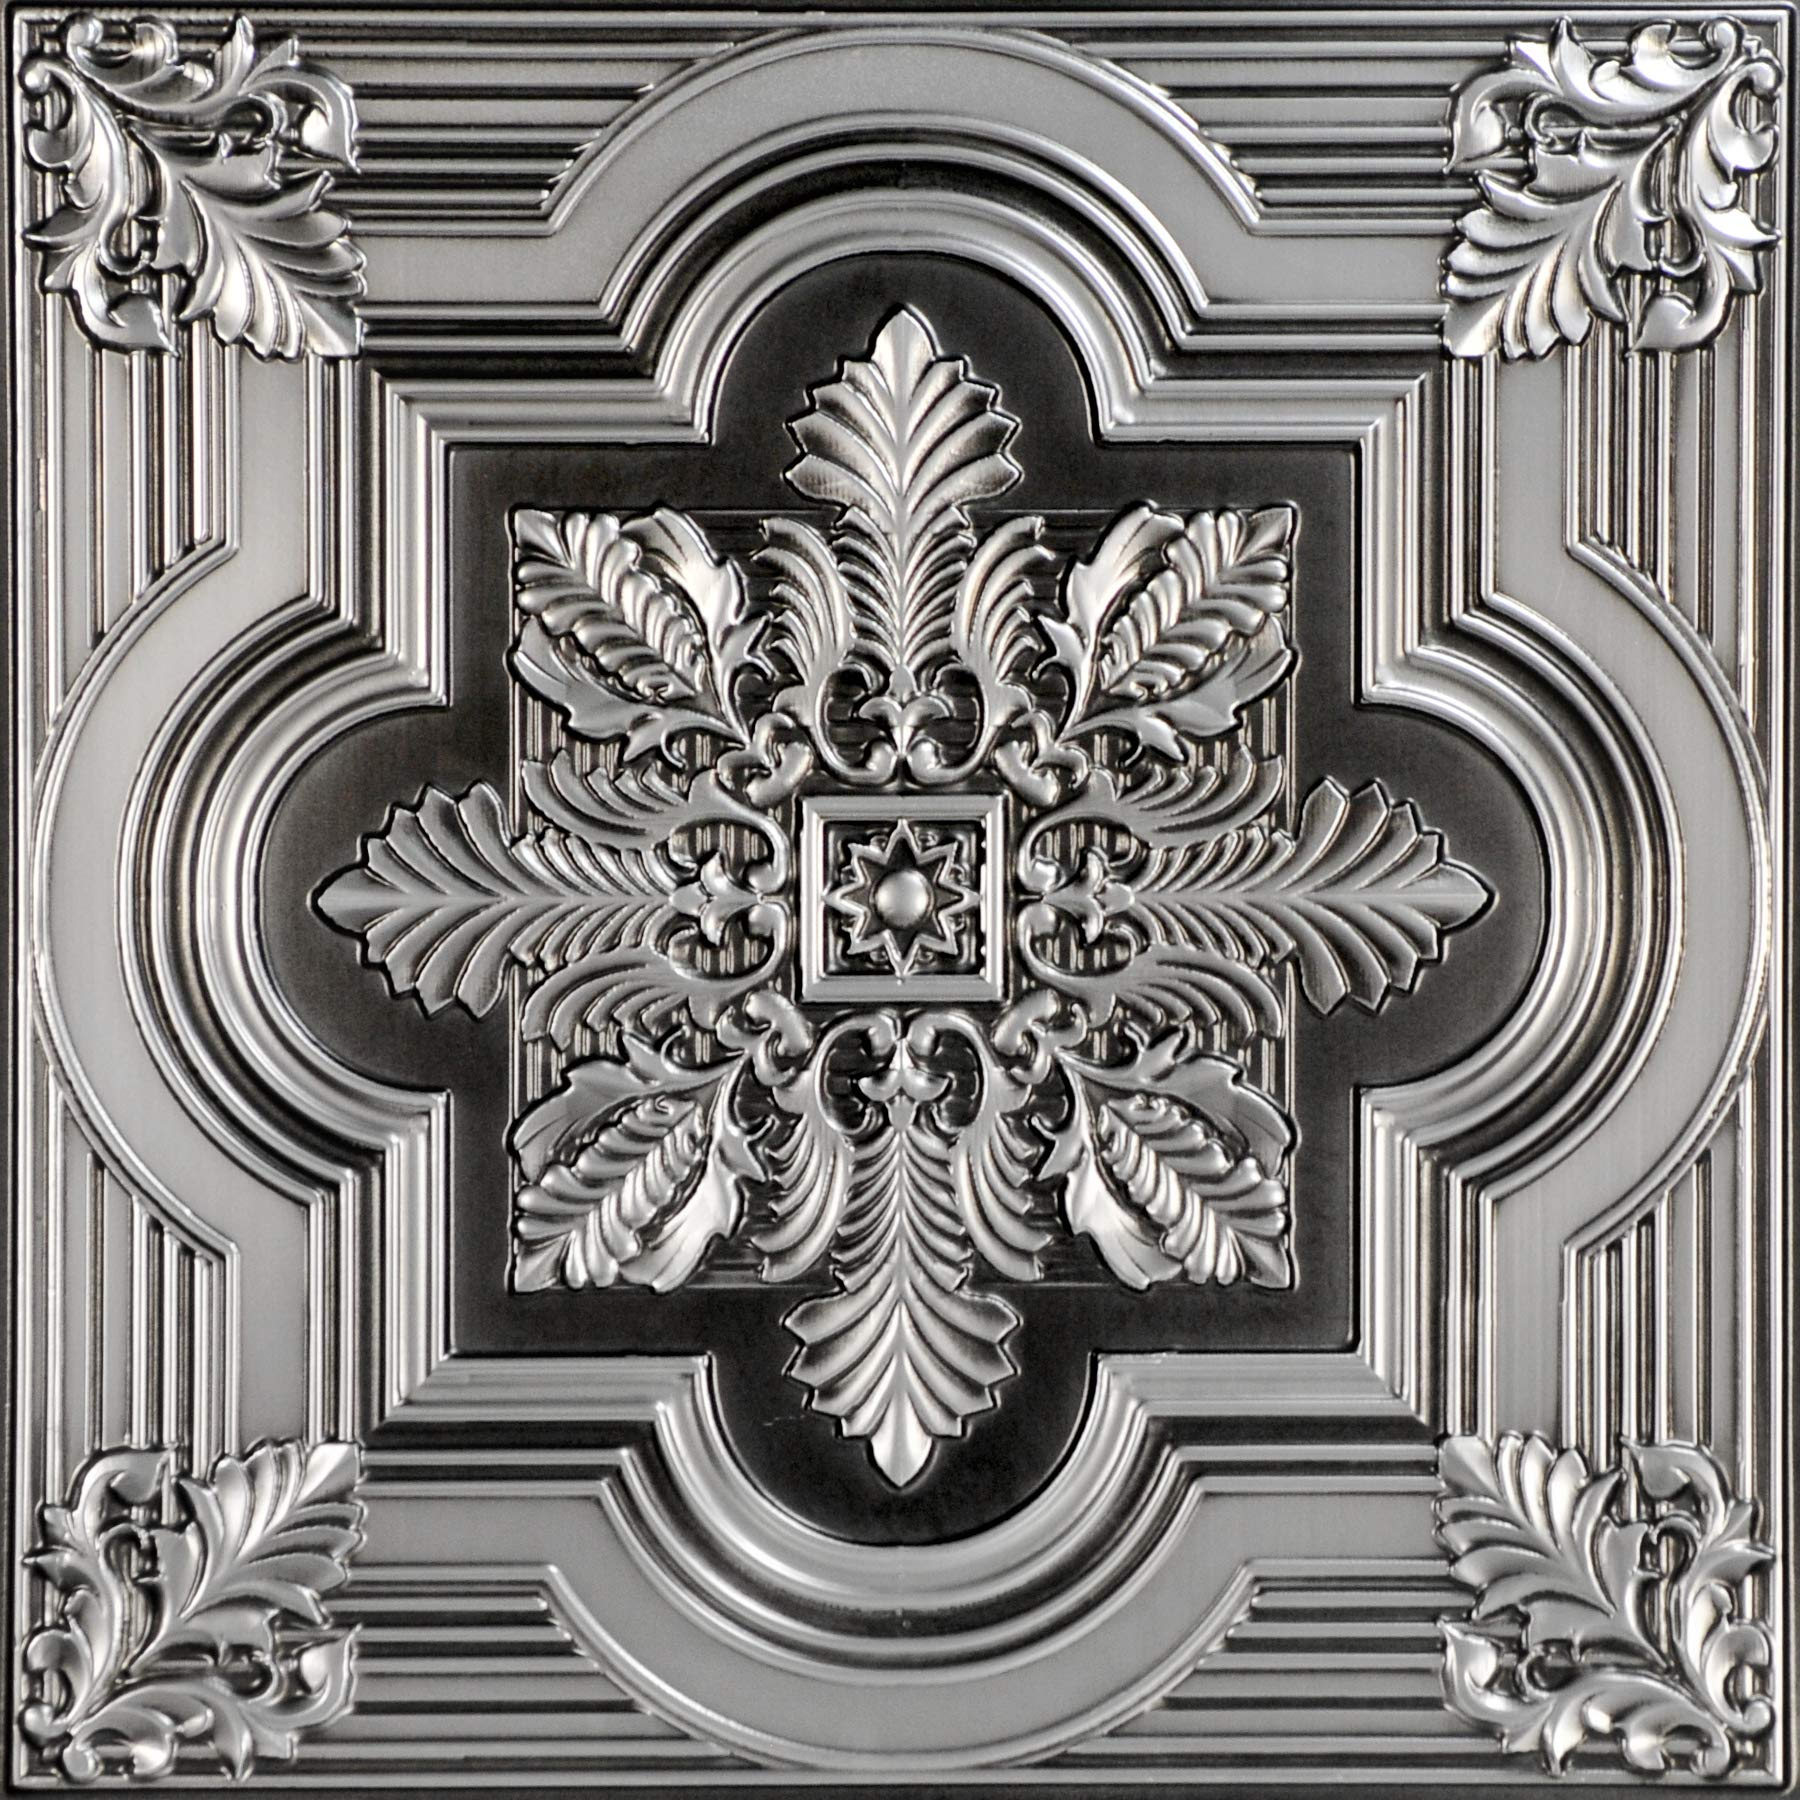 From Plain To Beautiful In Hours 206as-24x24 Ceiling Tile, Antique Silver